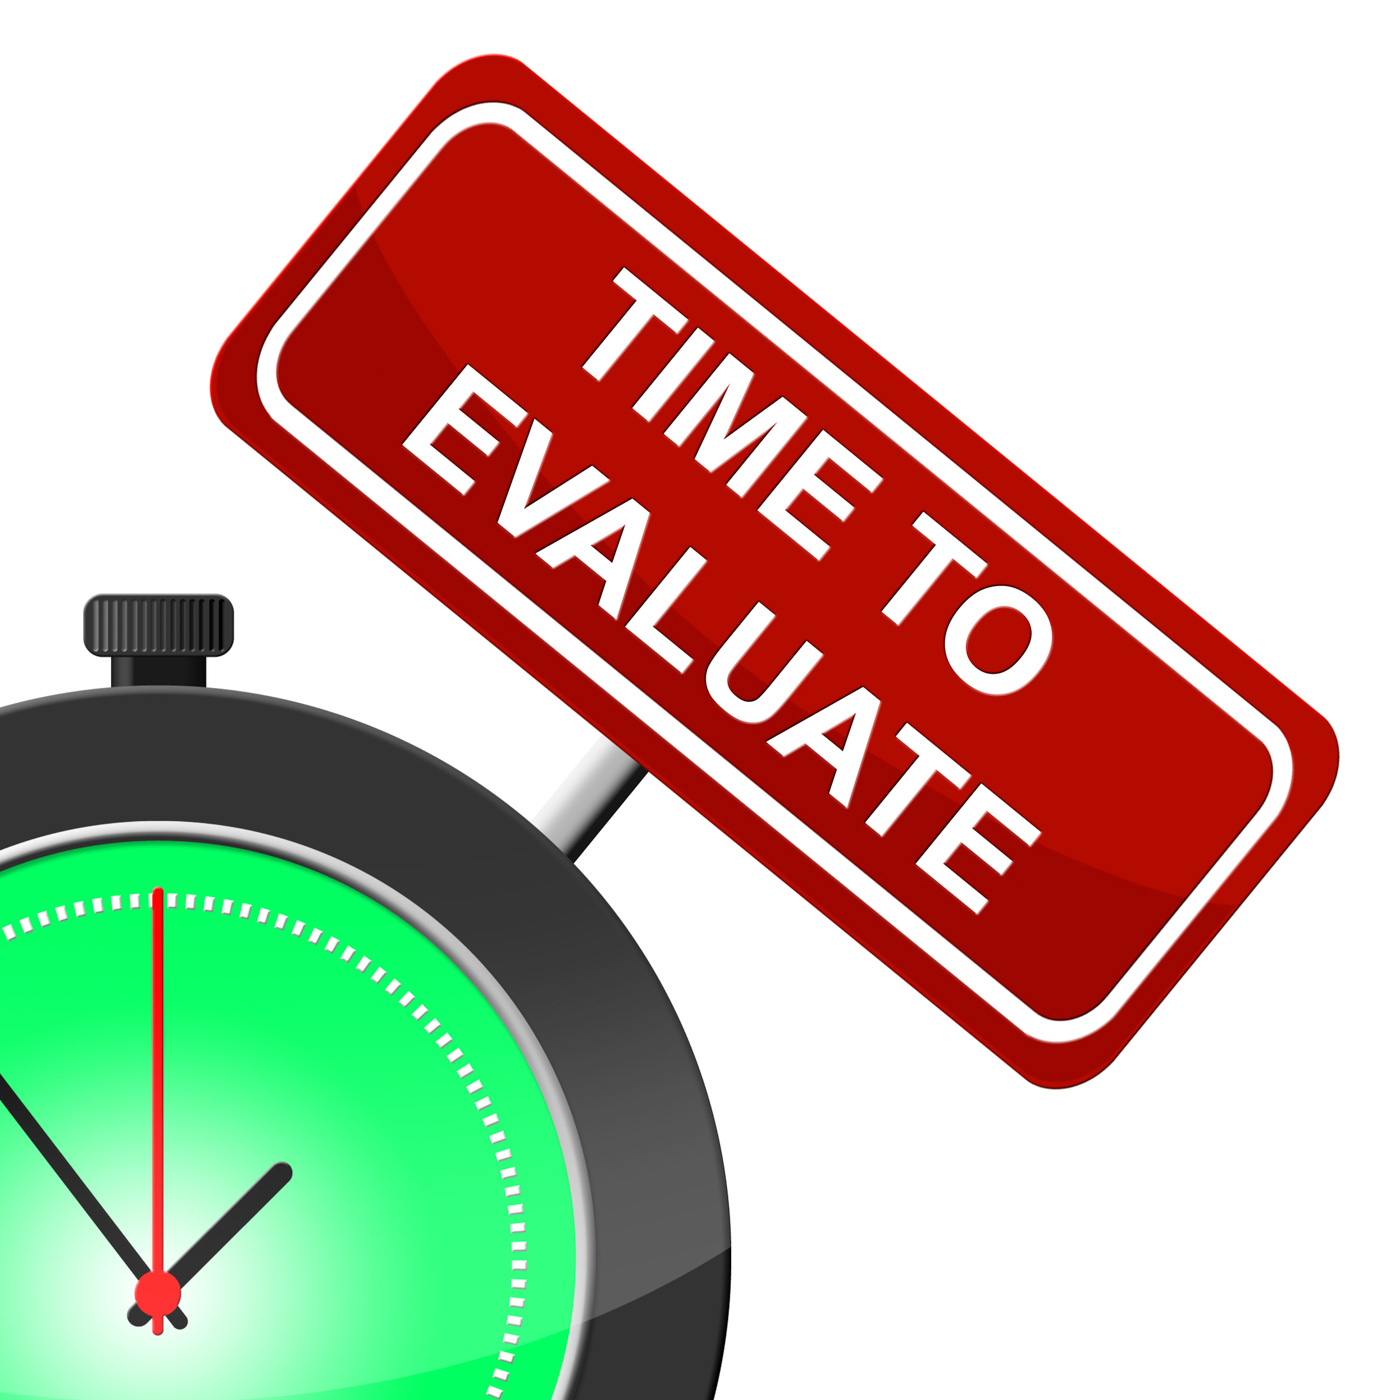 Time to evaluate indicates interpret evaluating and calculate photo